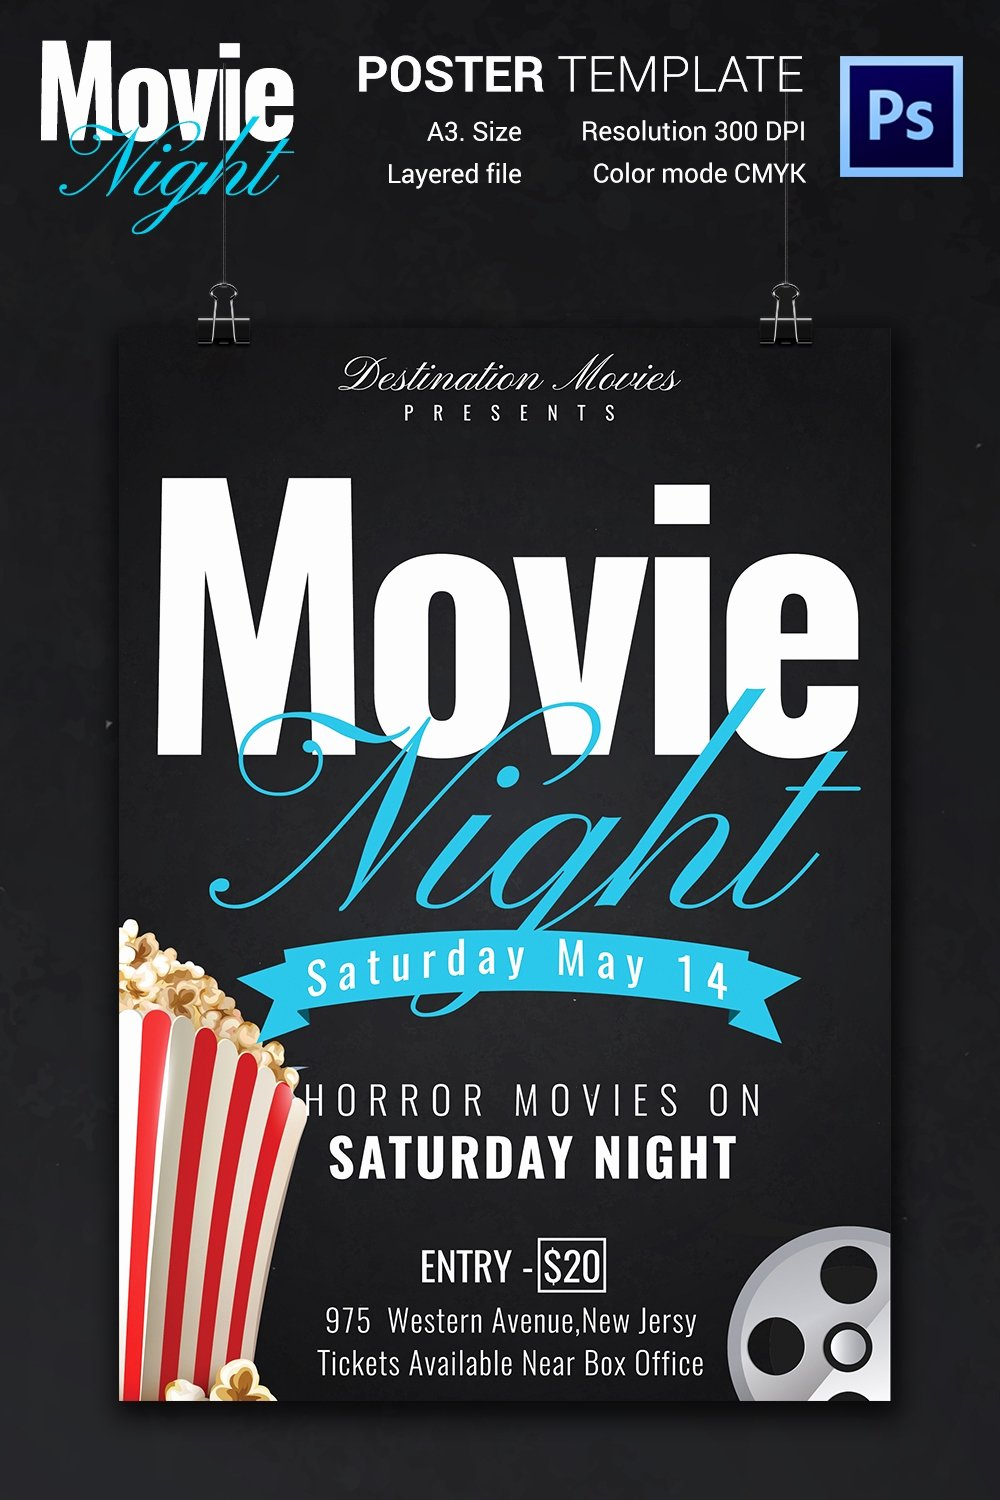 Free Movie Poster Template New Movie Night Flyer Template 25 Free Jpg Psd format